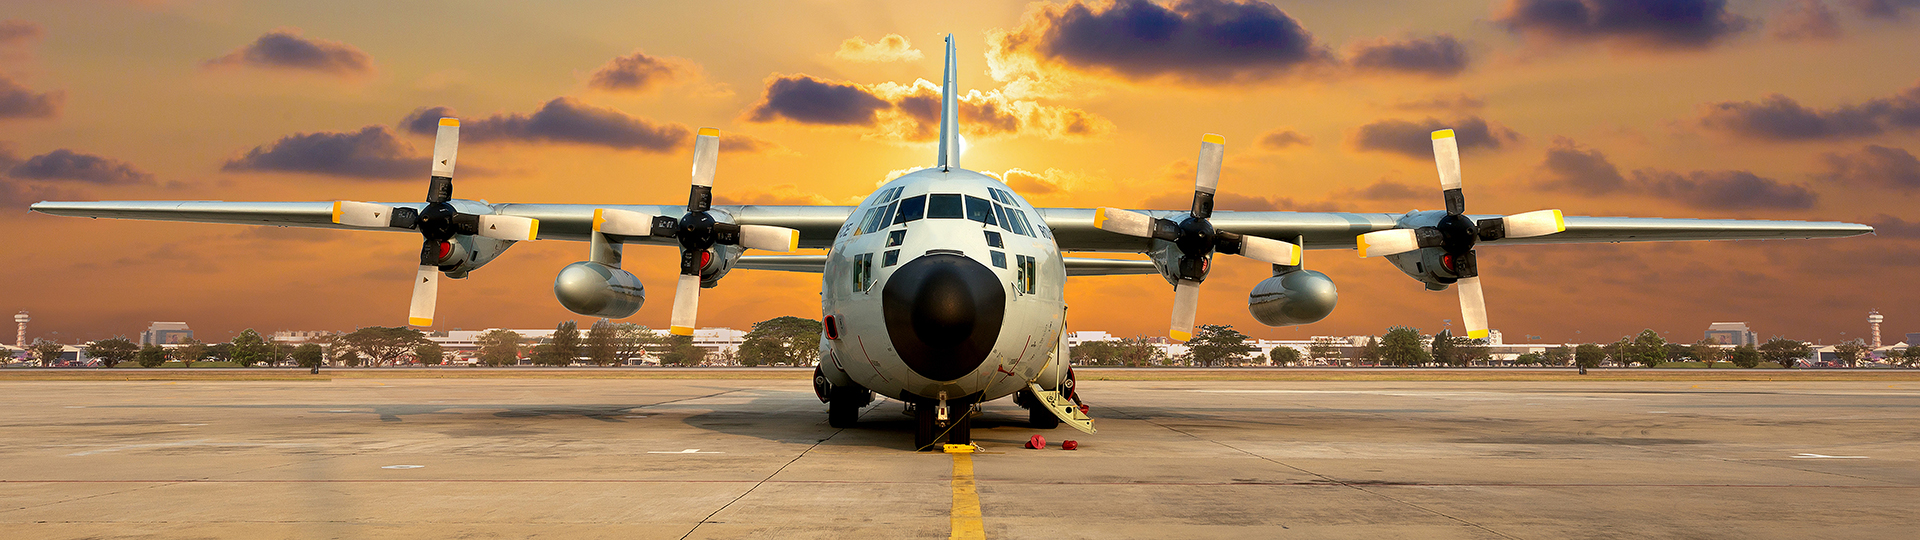 Lockheed Martin C-130 Transport Aircraft